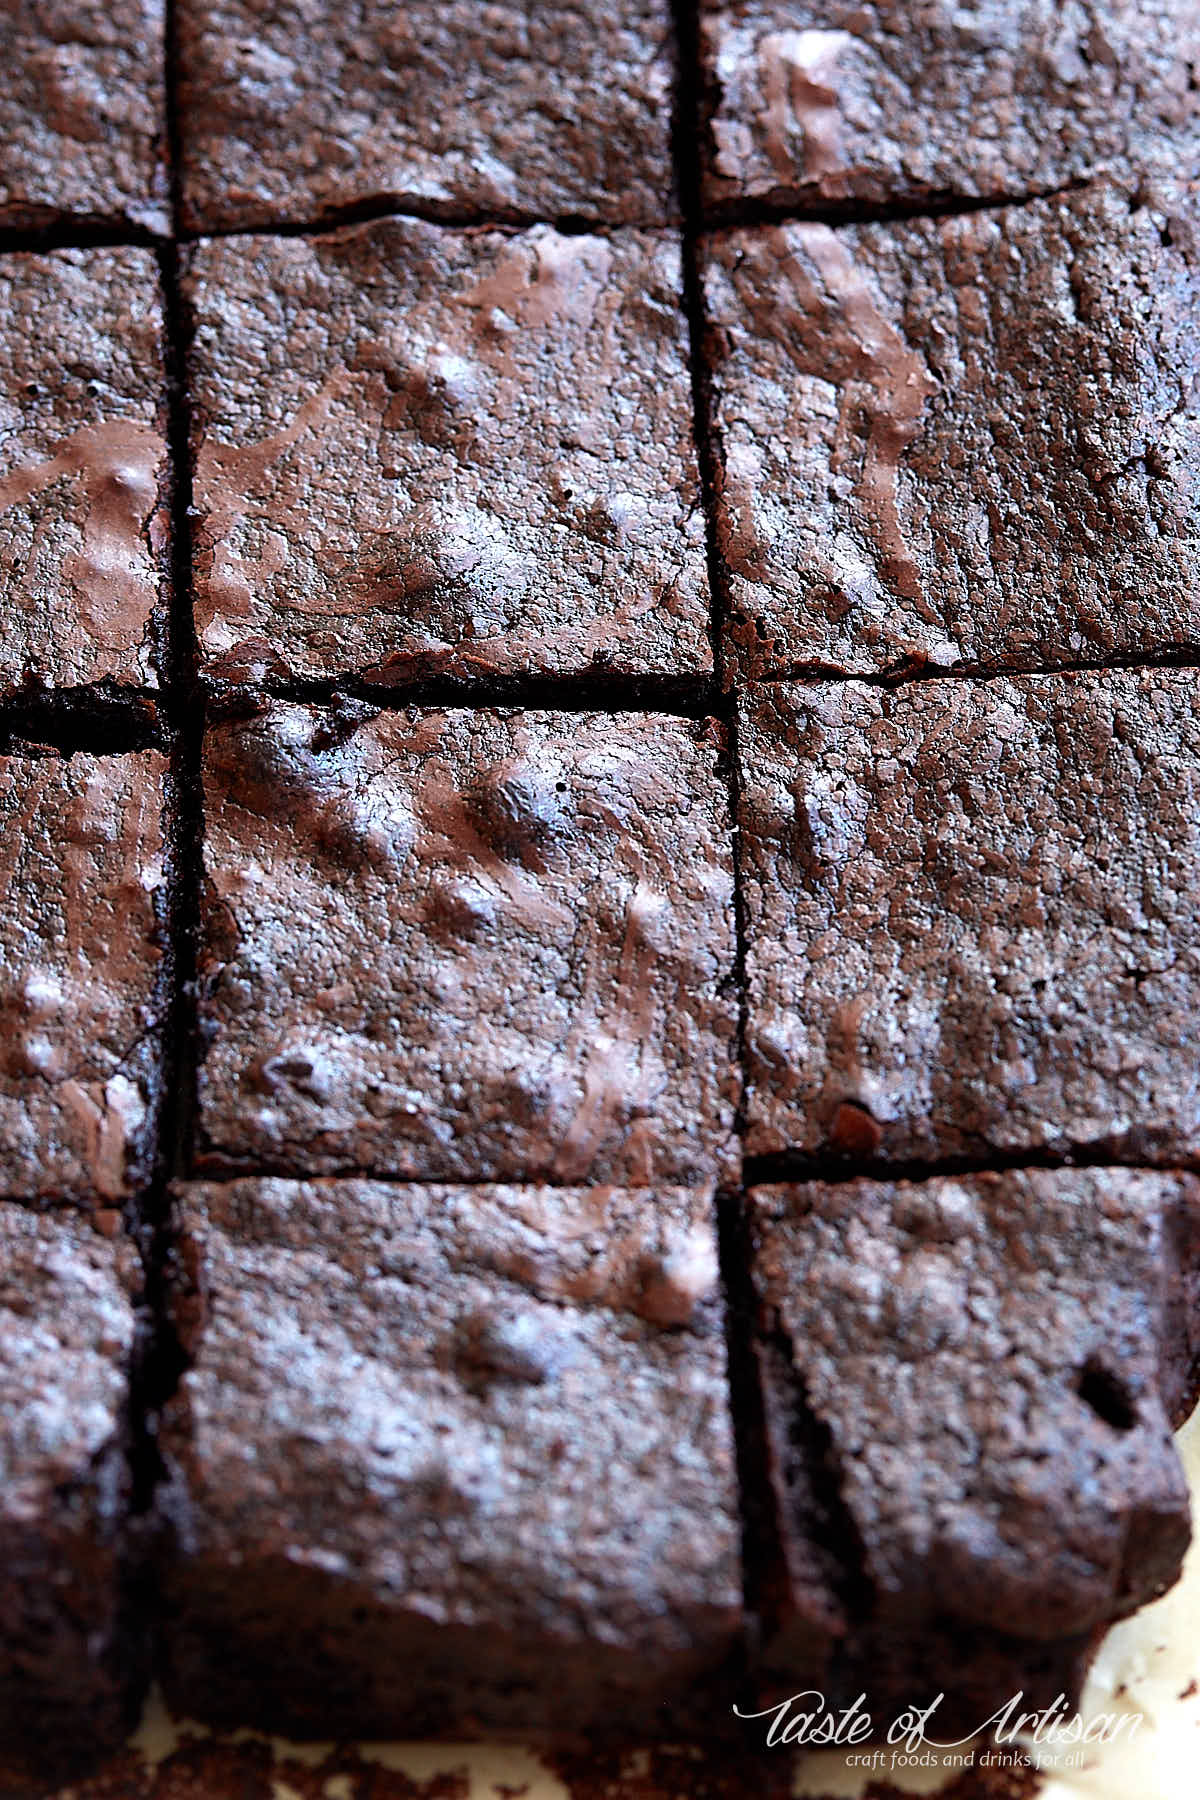 Flourless brownie, cut into squares, inside a baking dish.